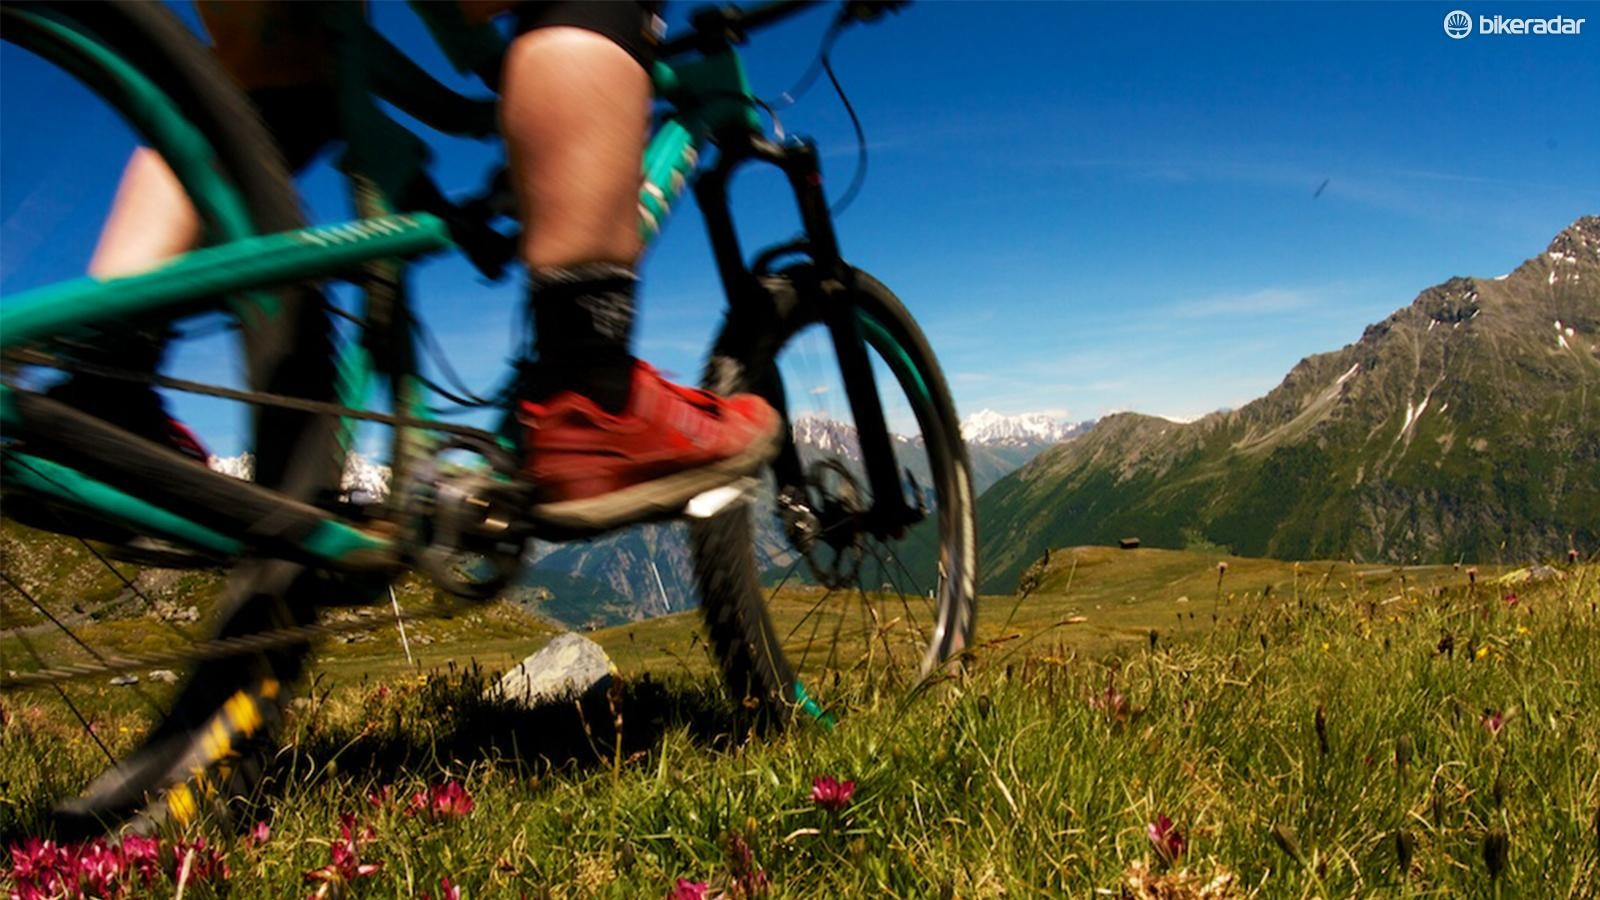 Here are 10 tips to get you ready to hit the trail this spring